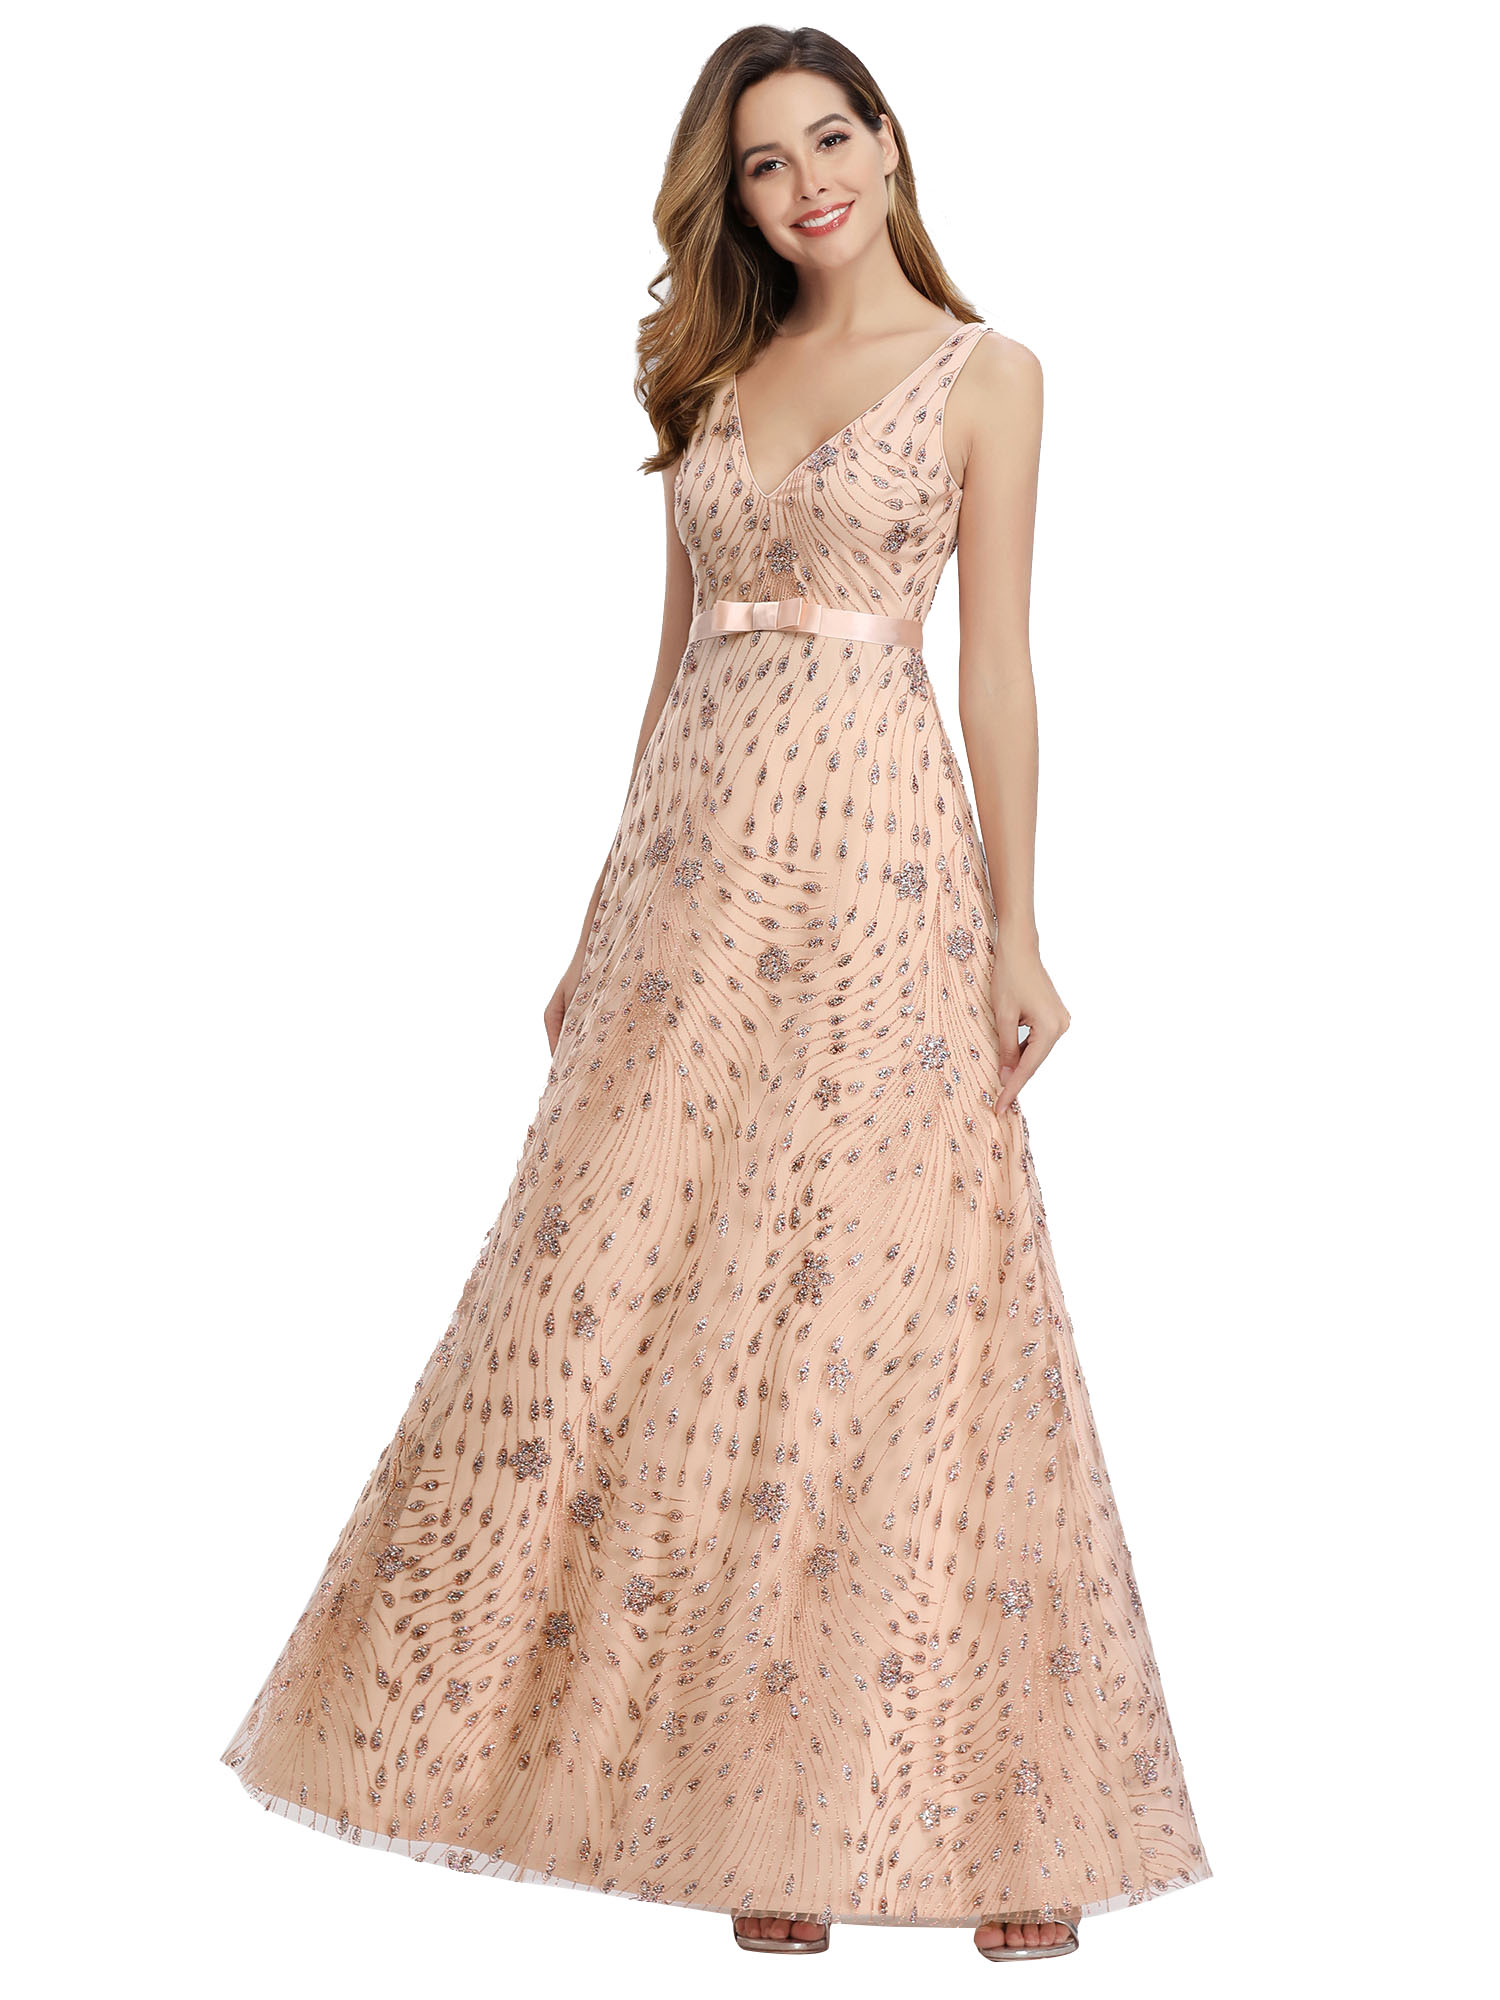 Ever-Pretty-US-Glitter-Evening-Dresses-A-Line-Floral-V-Neck-Party-Cocktail-Gowns thumbnail 8